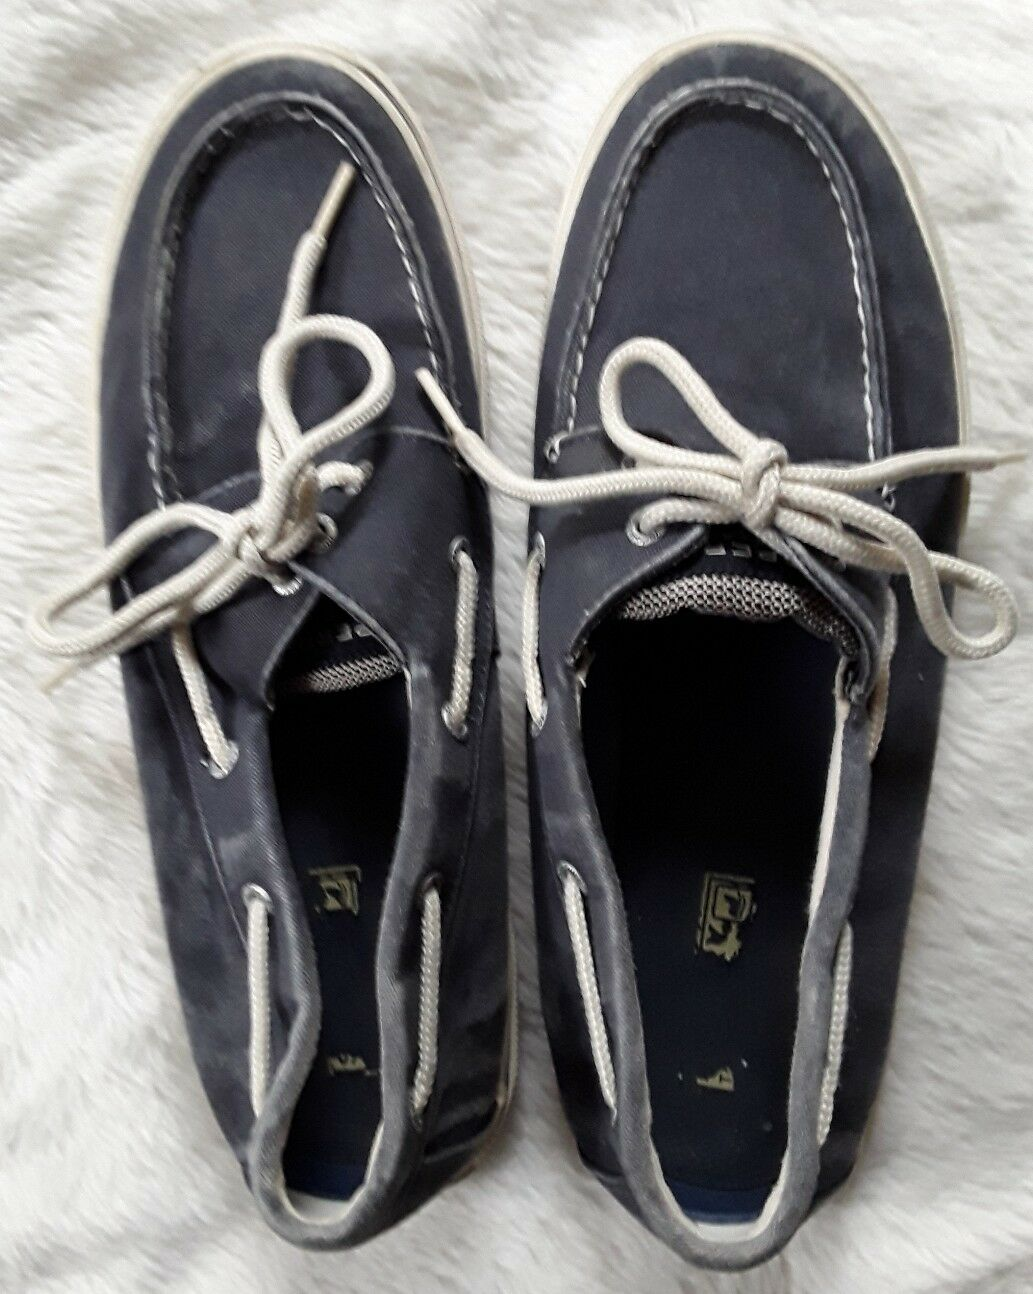 Sperry Uomo Denim Blue Top Slider Boat Shoes Size 11M